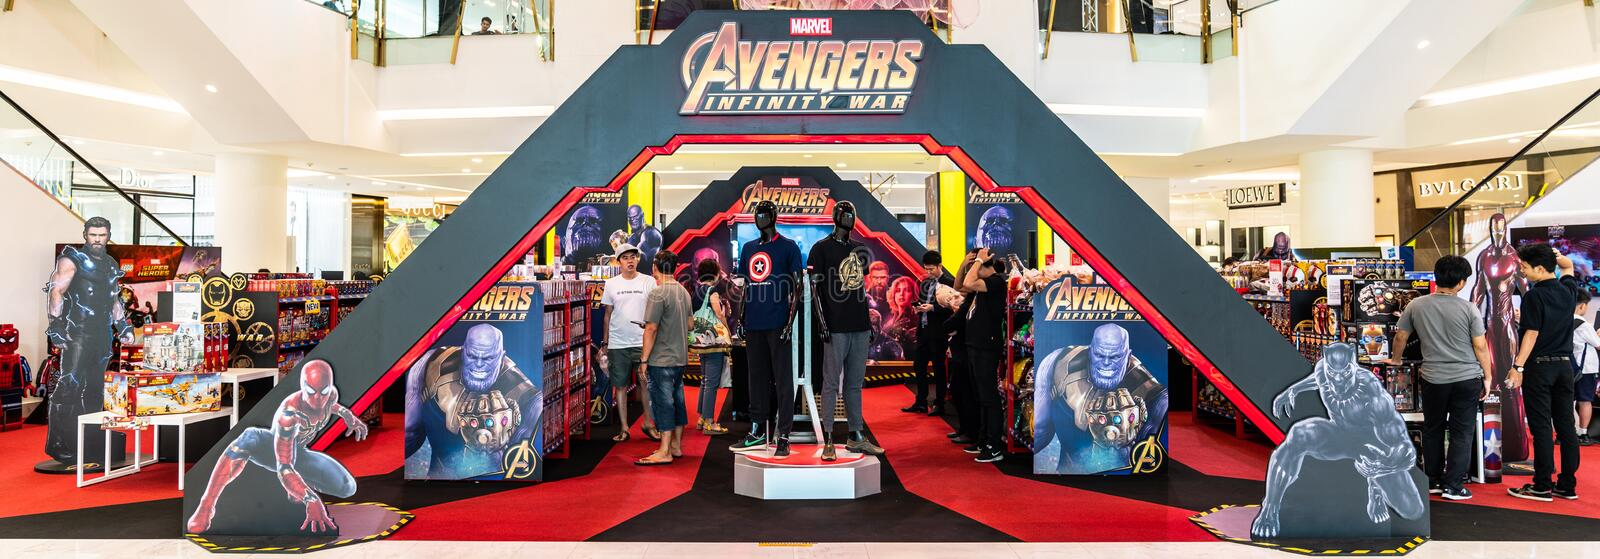 Bangkok, Thailand - Apr 26, 2018: Avenger Infinity War Movie promotional event and toy sale exhibition booth held in shopping mall stock photography